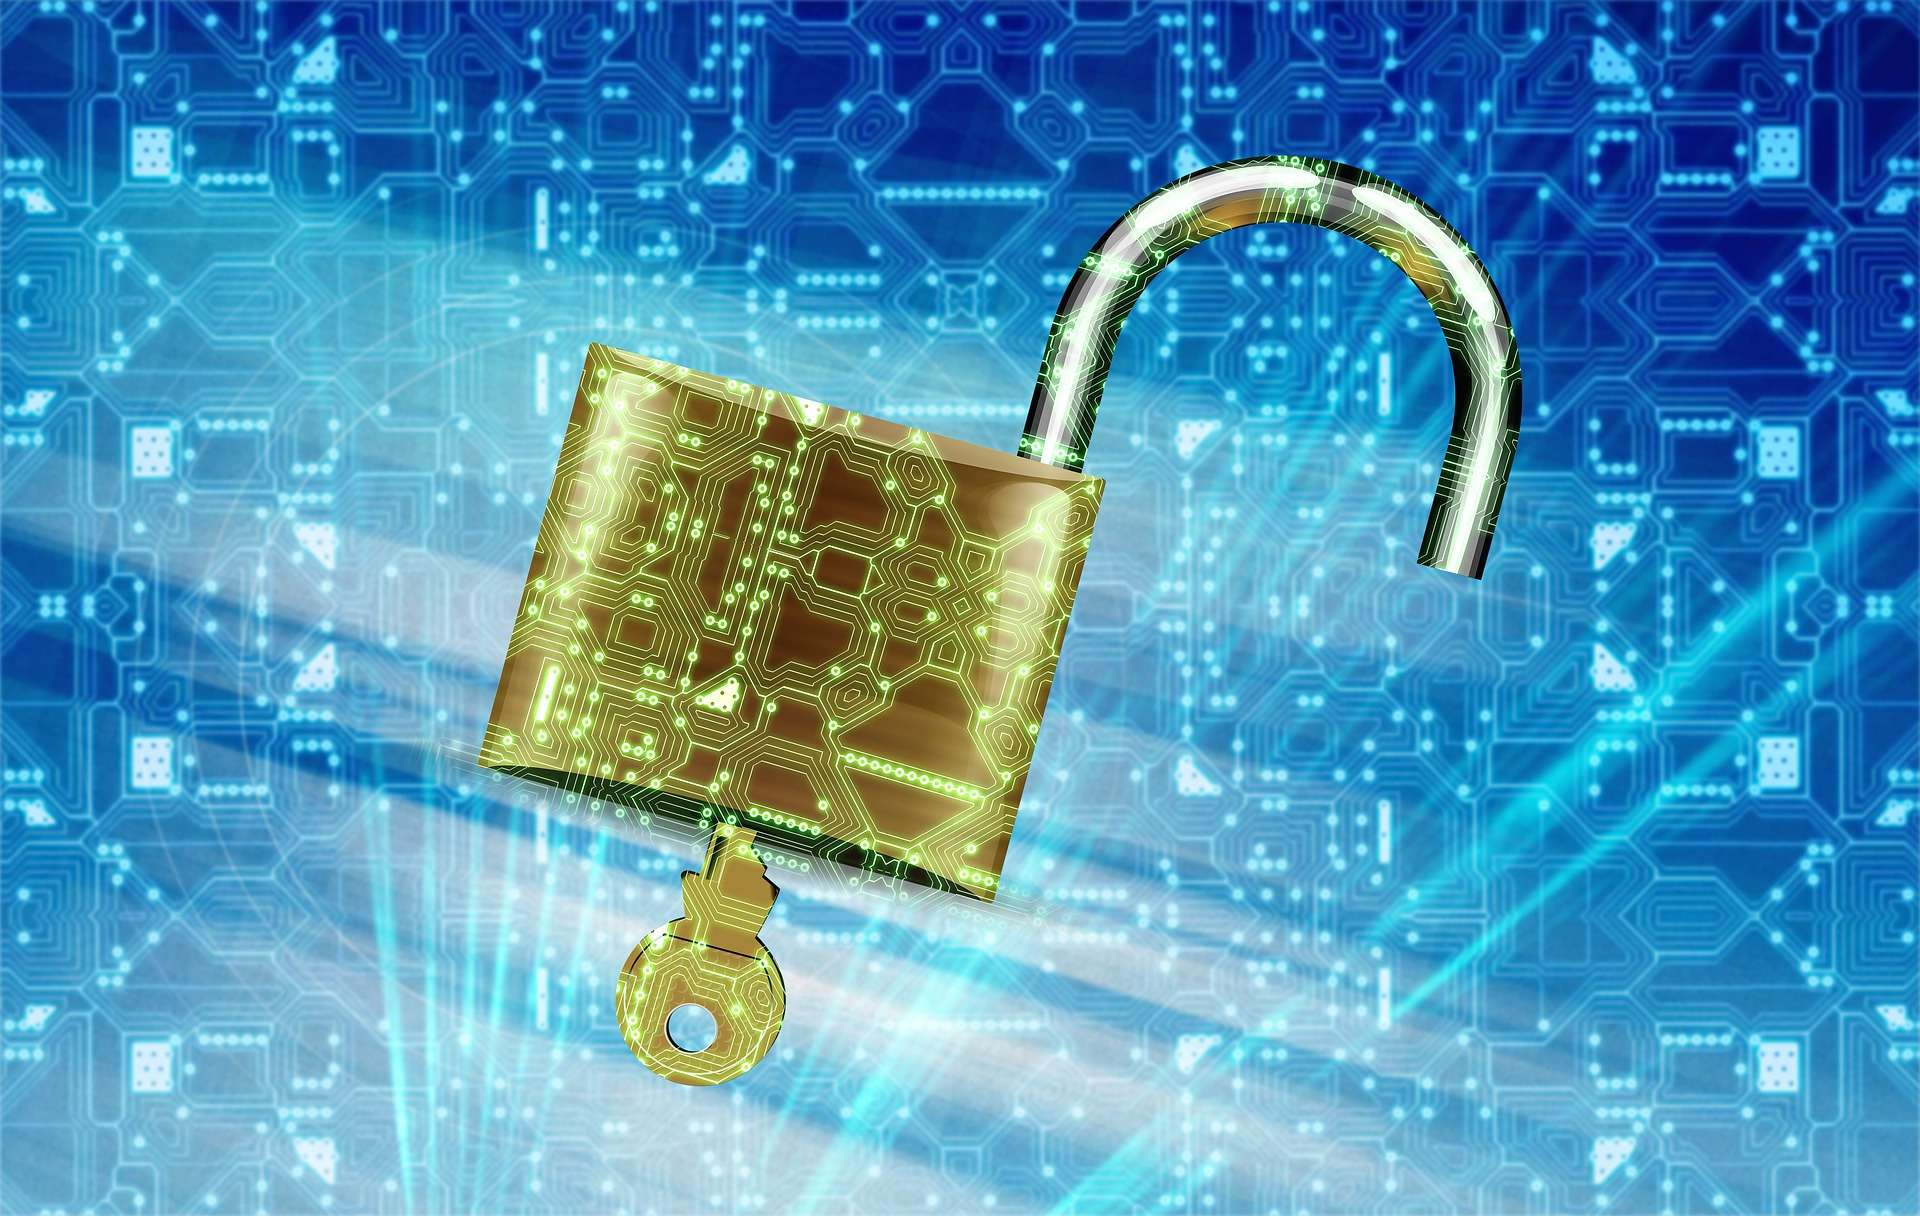 What is a Firewall and why should I care?